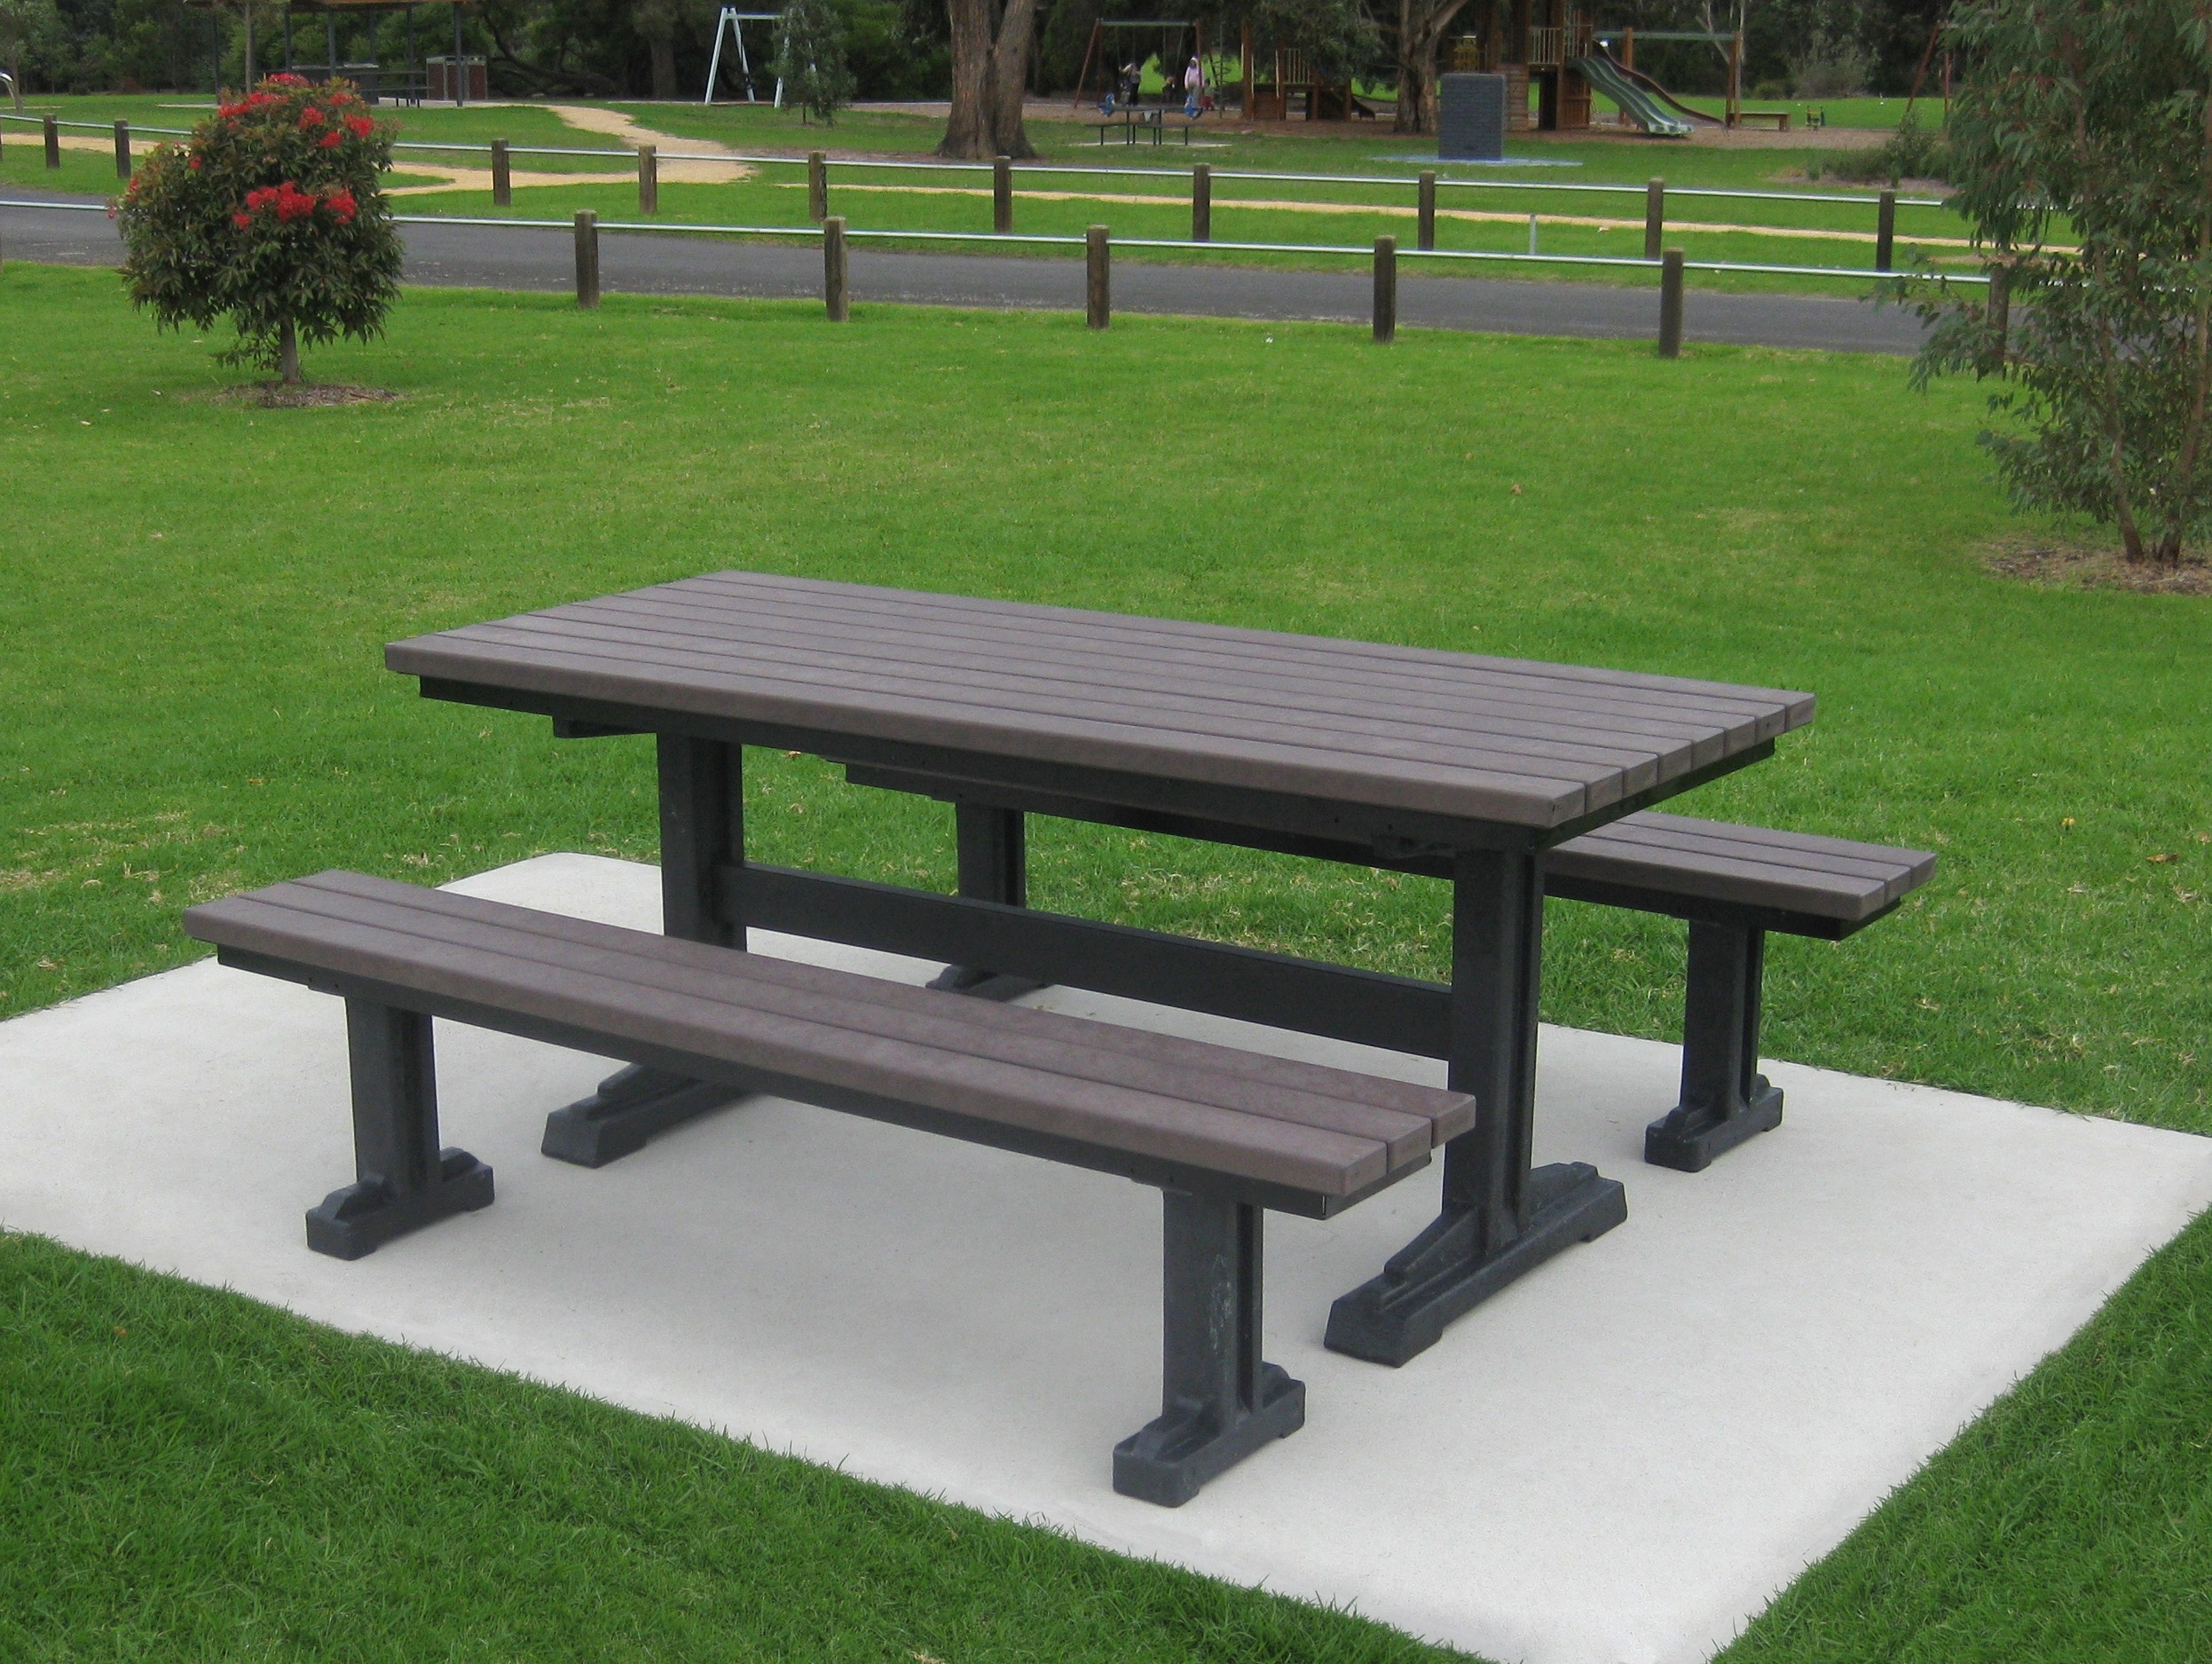 Furniture Replas Recycled Plastic Product For Outdoor Use